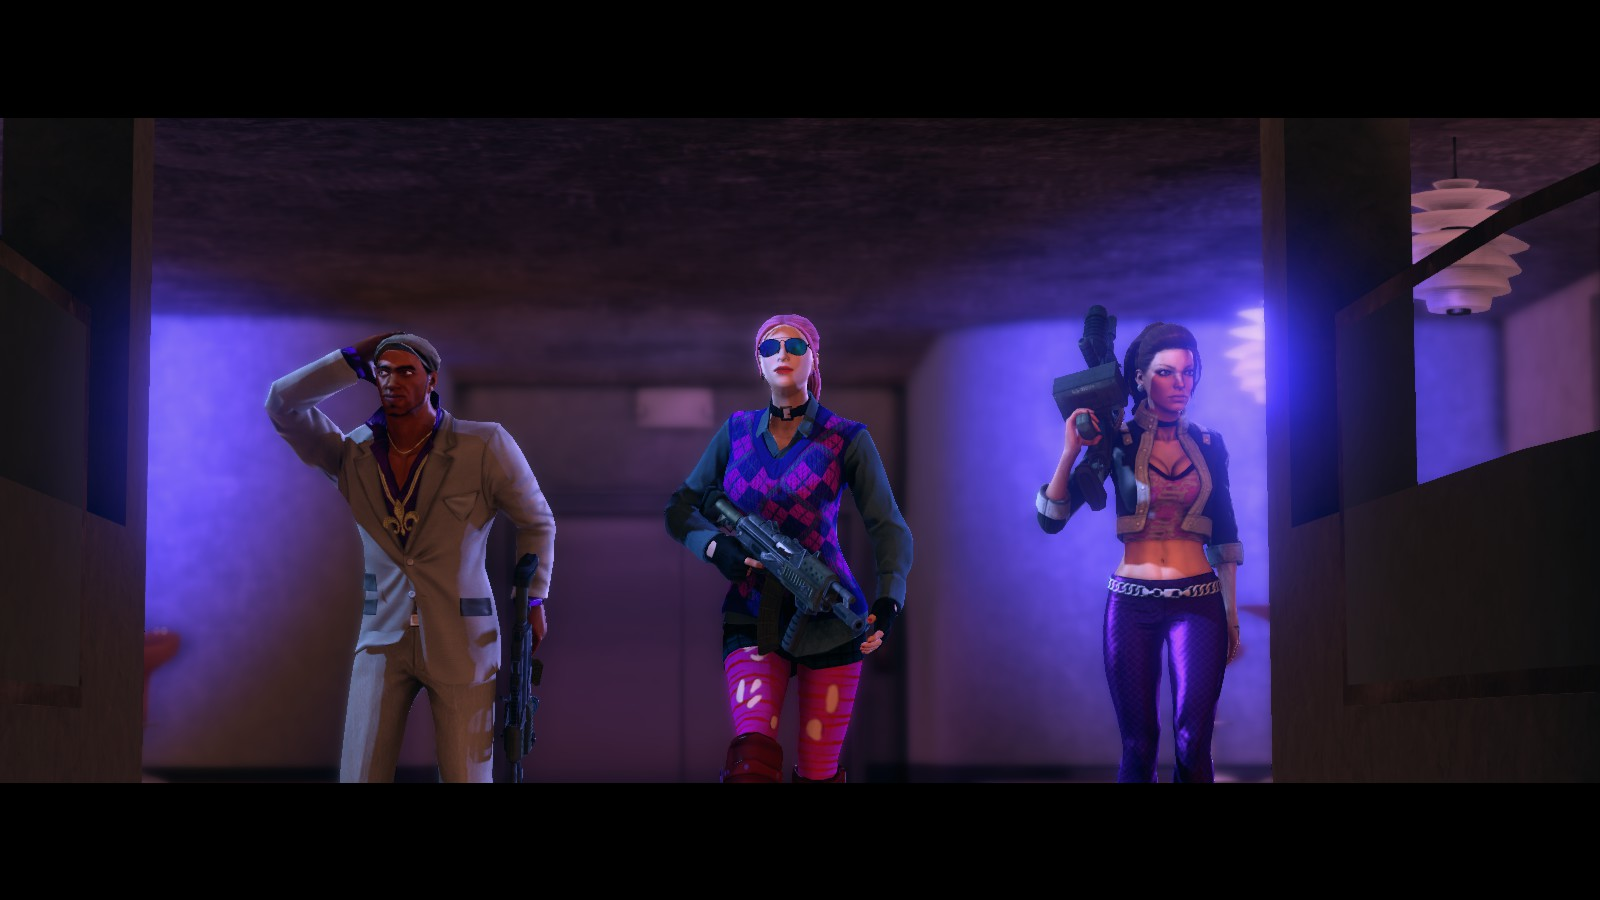 Saints Row Anime Character Creation : Why saints row iii is awesome by emilyrees on deviantart